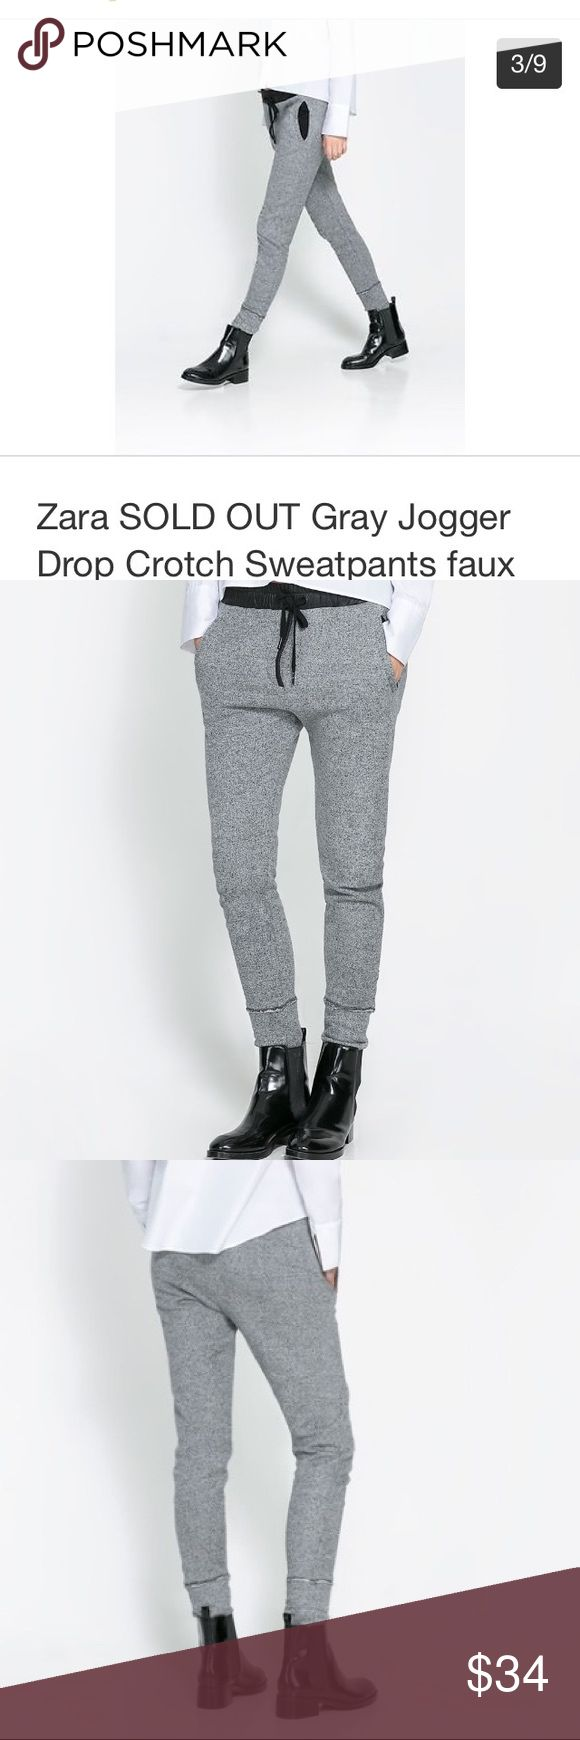 """ZARA gray joggers w/ faux leather waistband Chic Zara gray drop crotch joggers / skinny sweatpants. Black faux leather drawstring stretch waistband & trim detail on non-functional fly. Functional pockets. Super cute with heels, boots as pictured & of course, sneakers.Great condition, gently loved, no stains or tears.                                 Measurements taken with item laying flat & are approximate                  •Waist• 15"""" stretching to 19"""" (adjustable to smaller with…"""